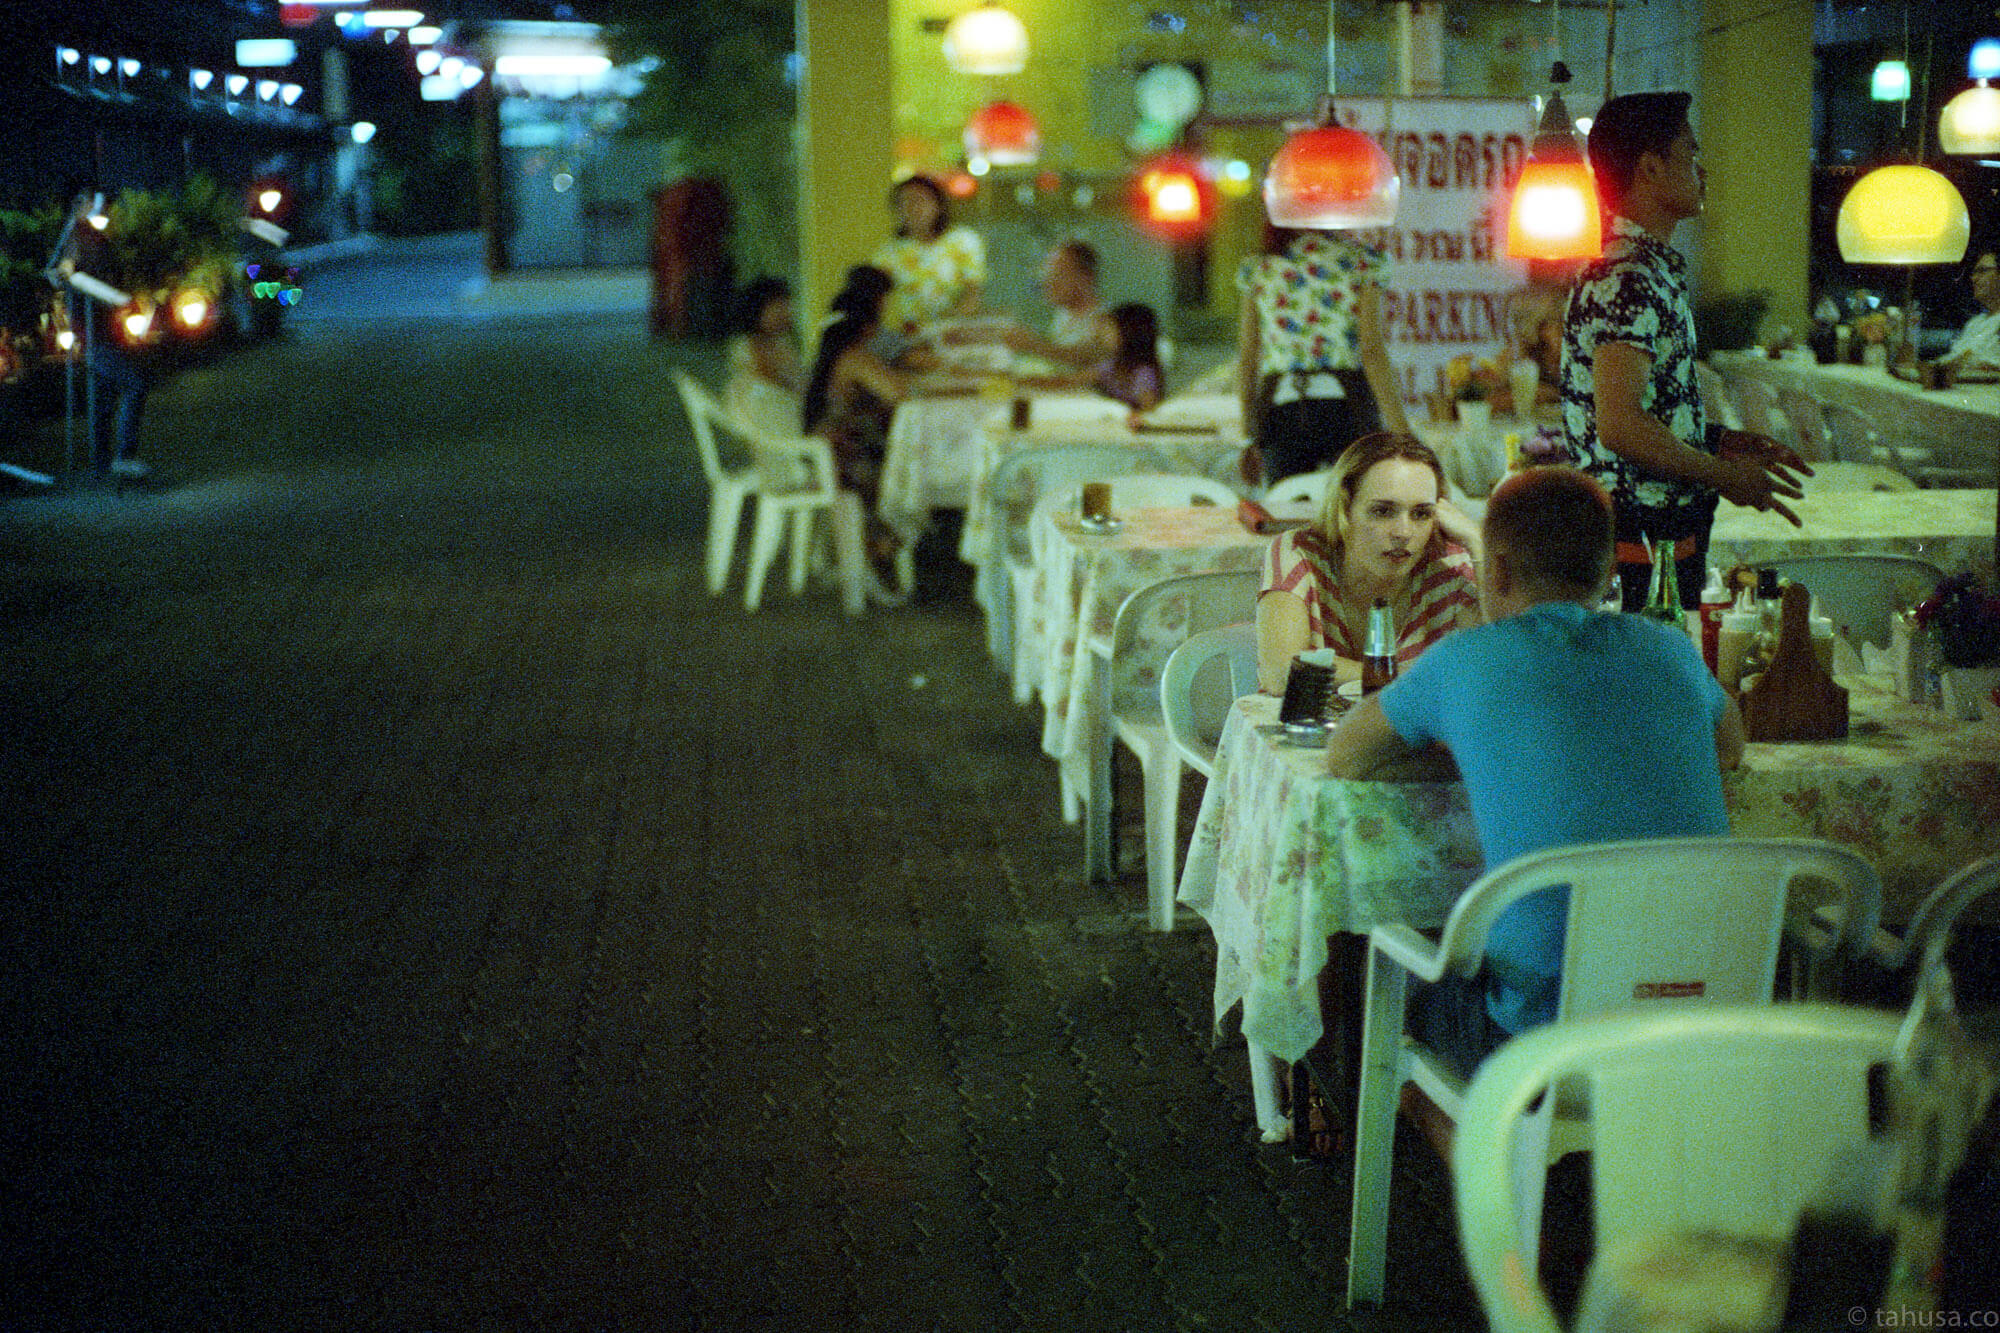 restaurant-pattaya-thailand-HK-Cinestill-800T-800-iso800-Tungsten-film-movie-kodak-with-Noctilux-50mm-f1-f1.0-e58-v1-large-aperture-bokeh-grain-pushed-street-snap